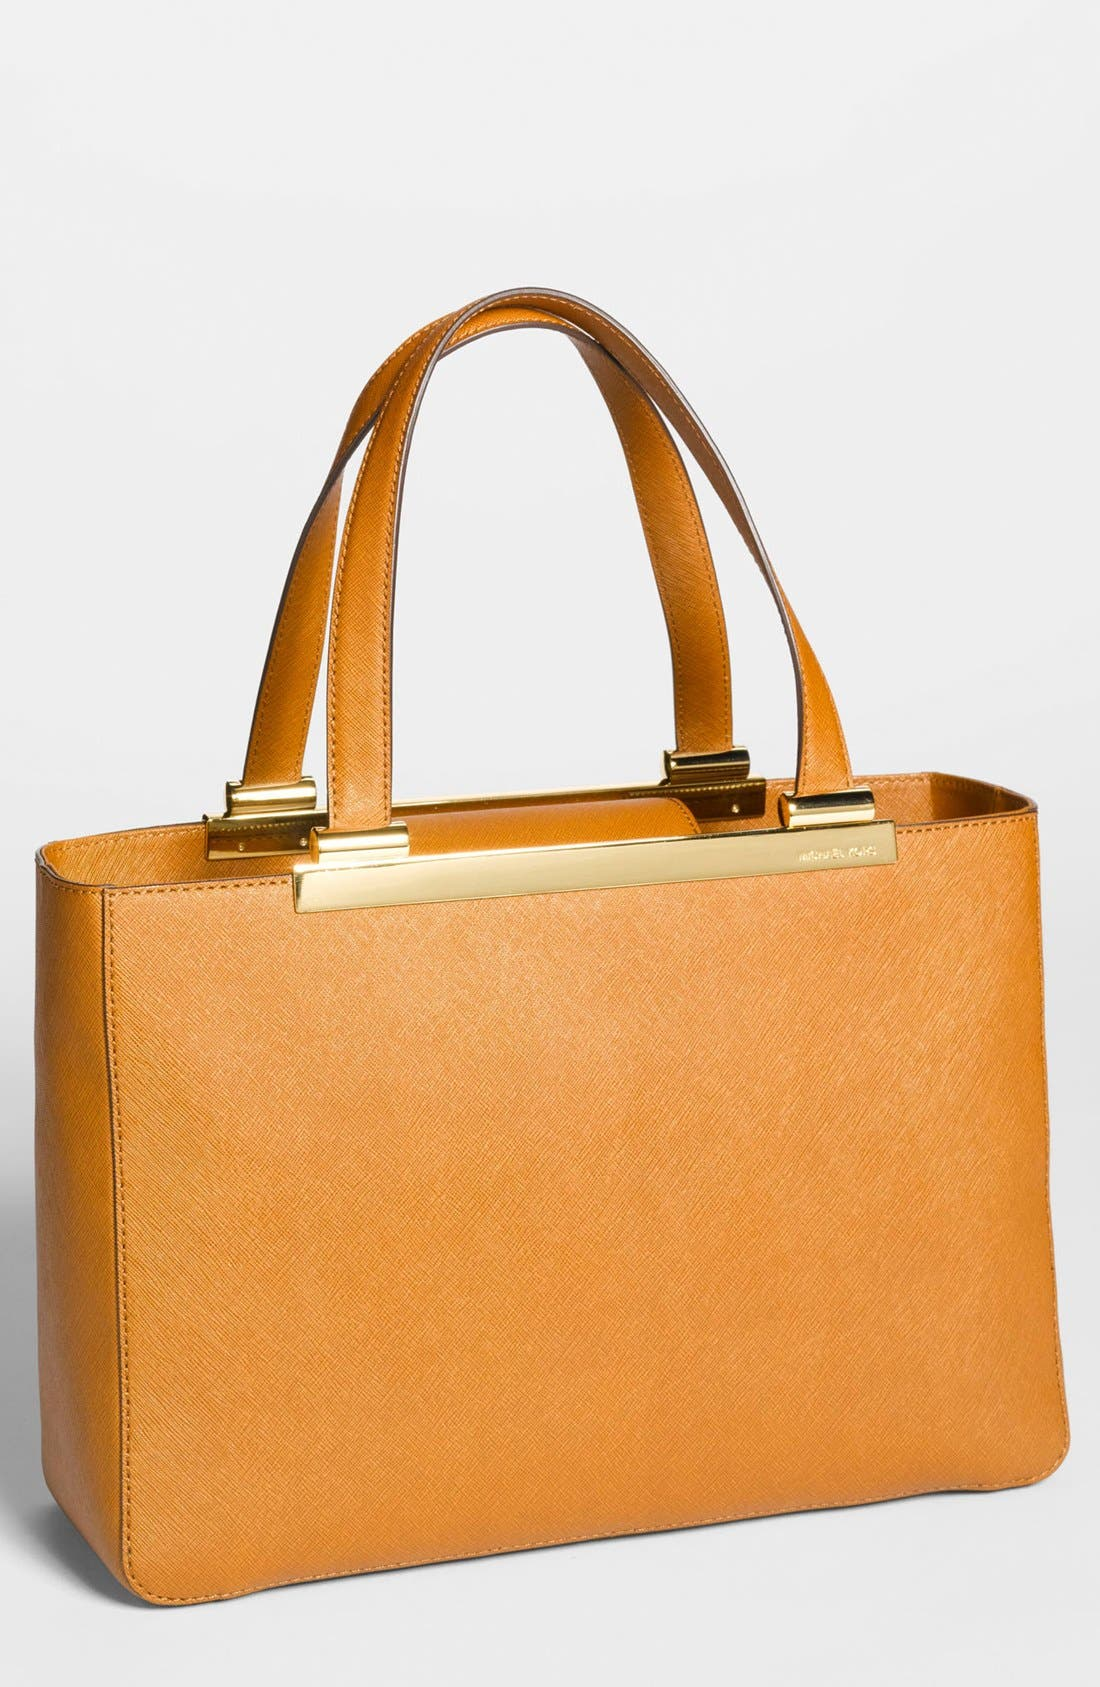 Main Image - MICHAEL Michael Kors 'Tilda - Large' Saffiano Leather Tote (Online Only)